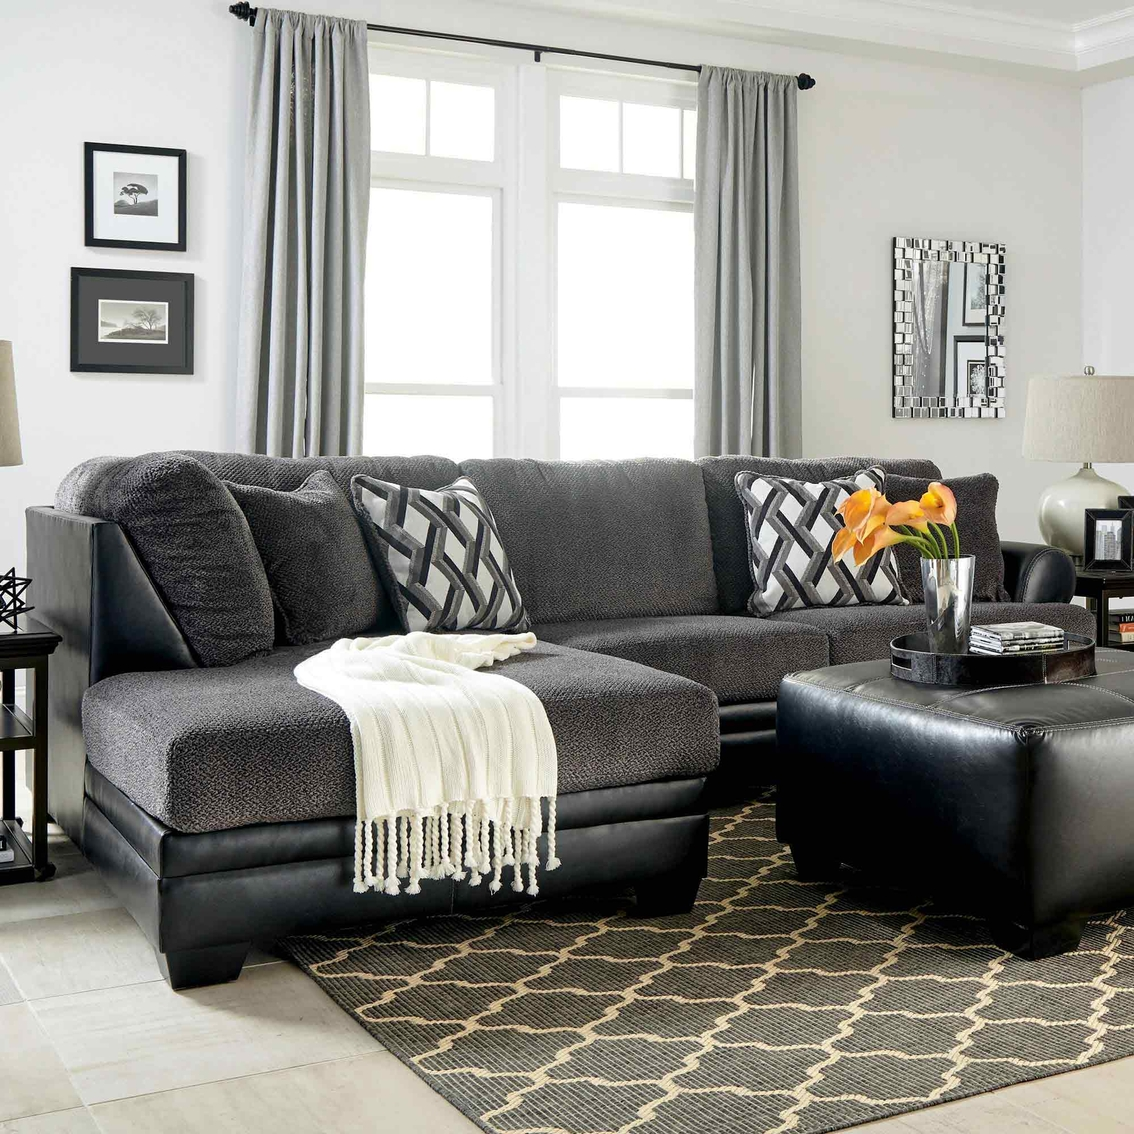 Benchcraft Kumasi 2 Pc. Sectional LAF Corner Chaise/RAF Sofa